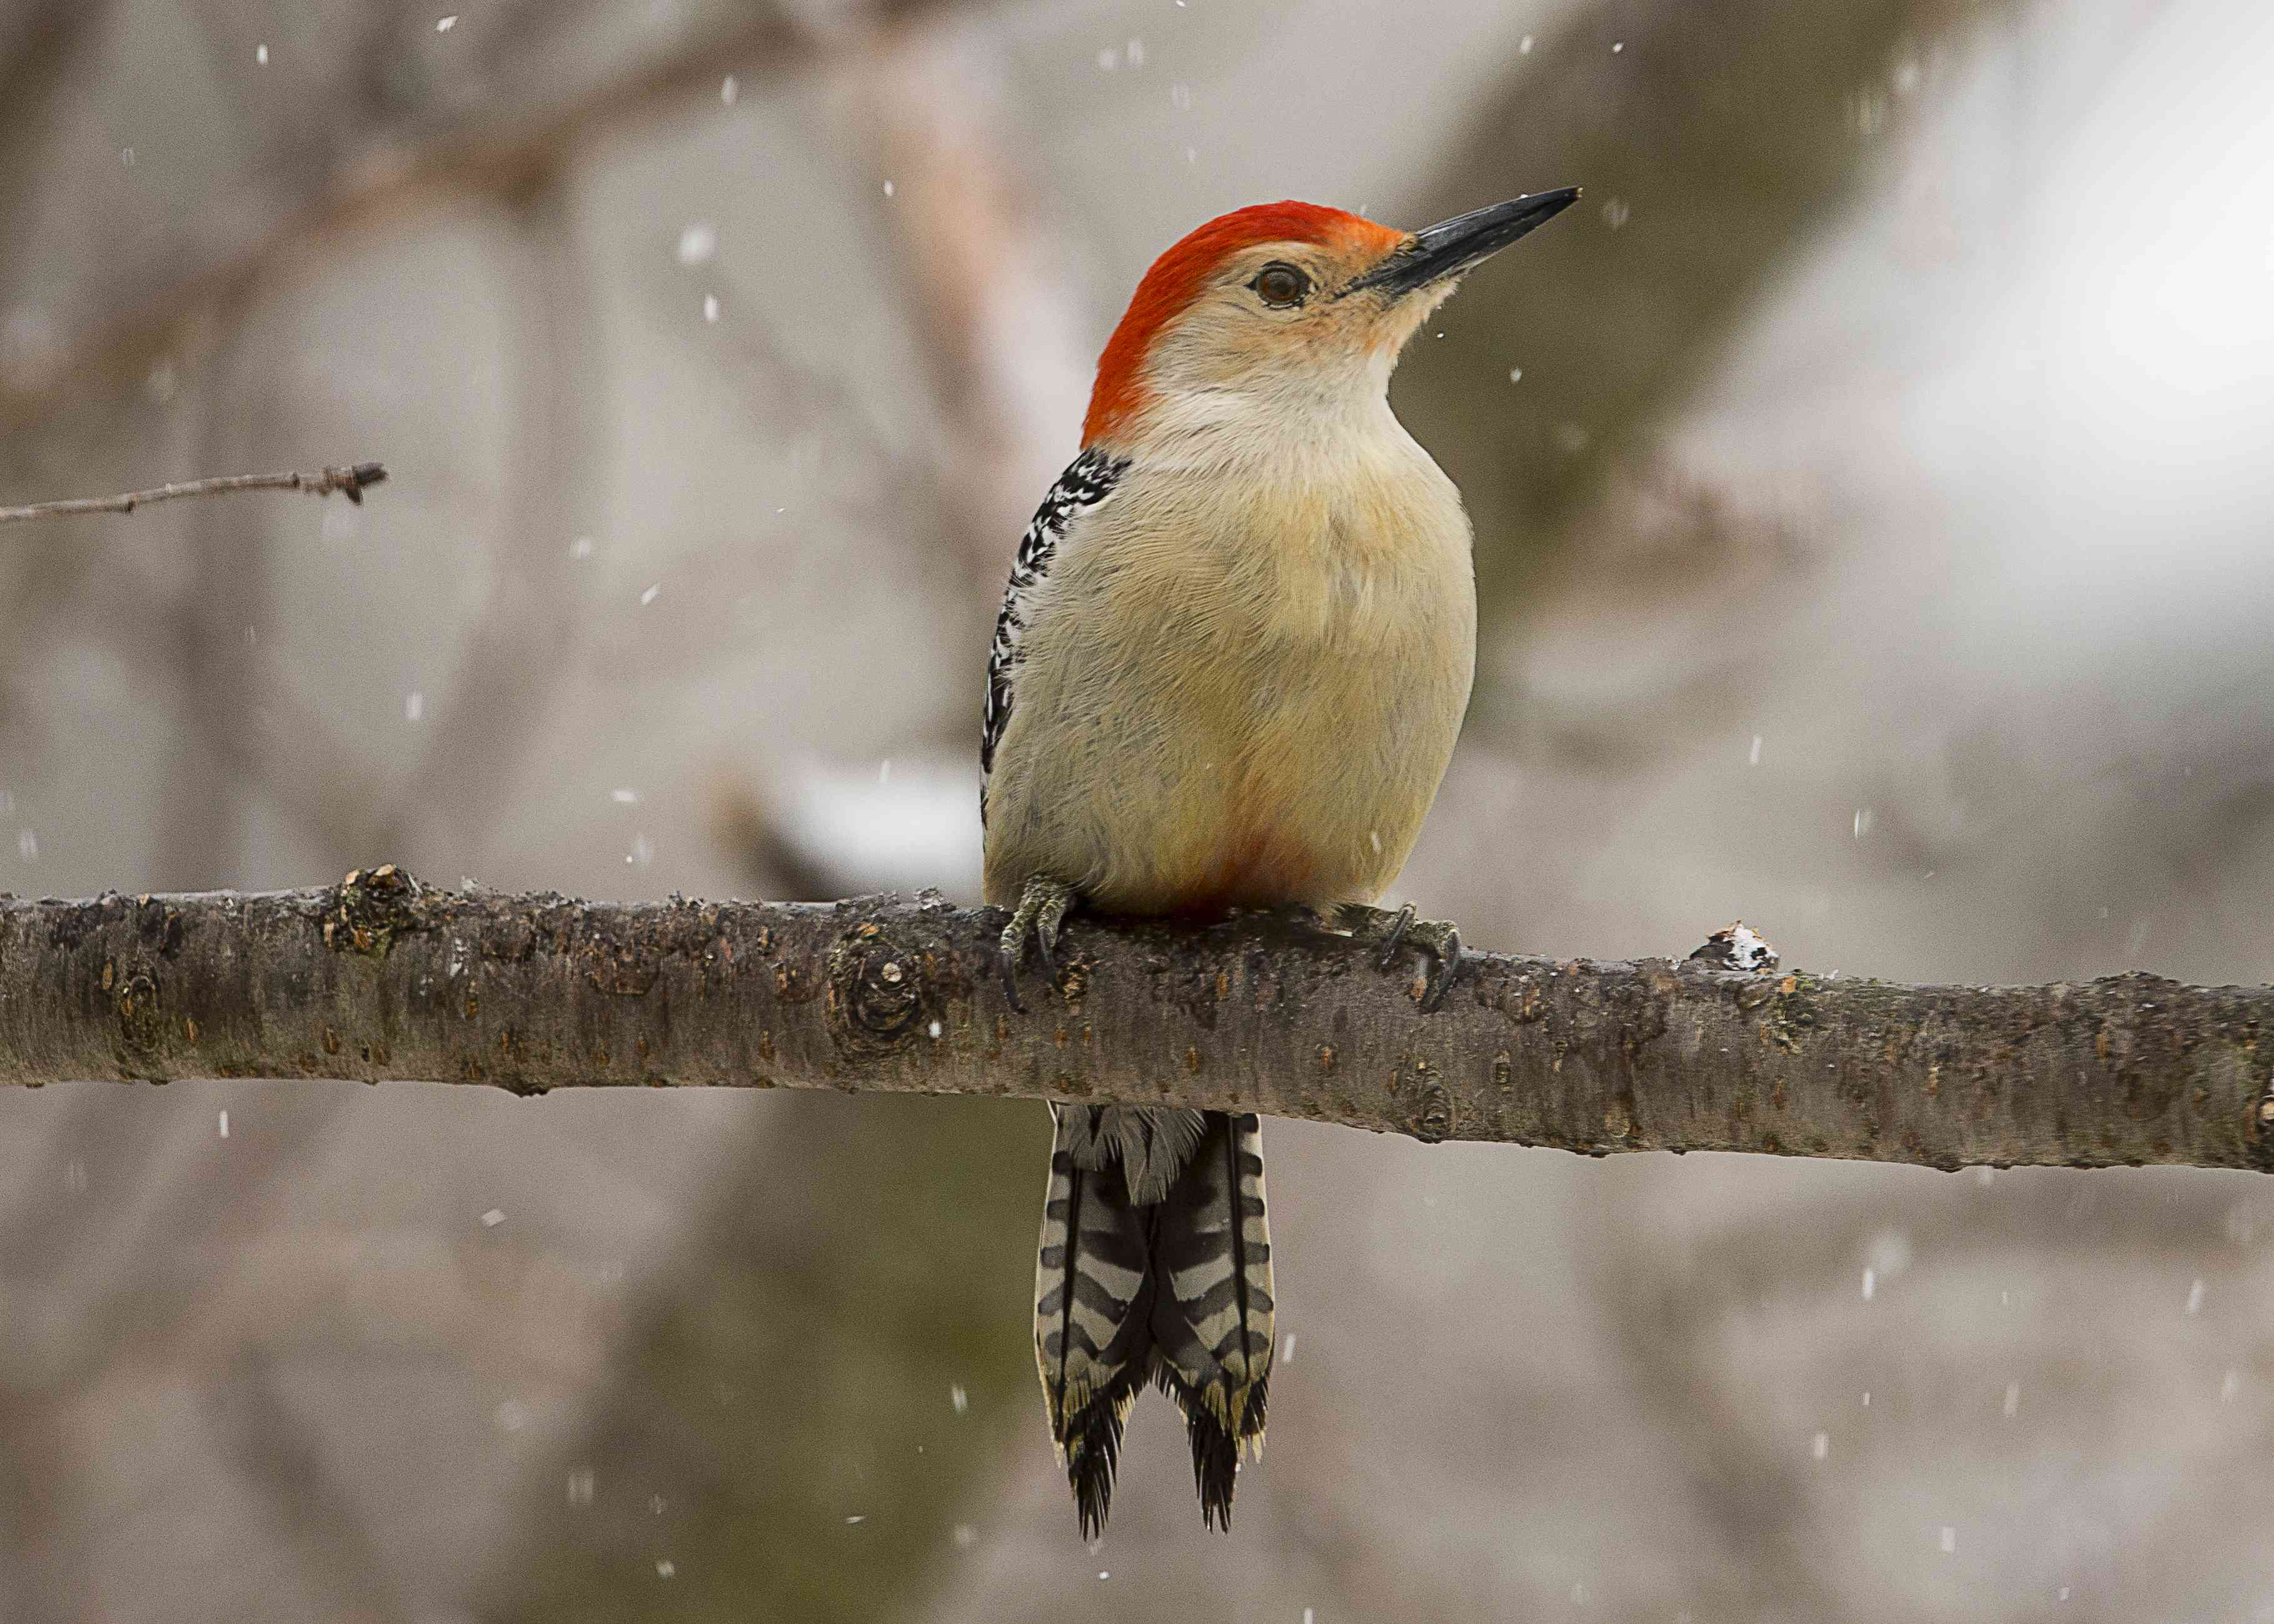 A red-bellied woodpecker resting on a branch.